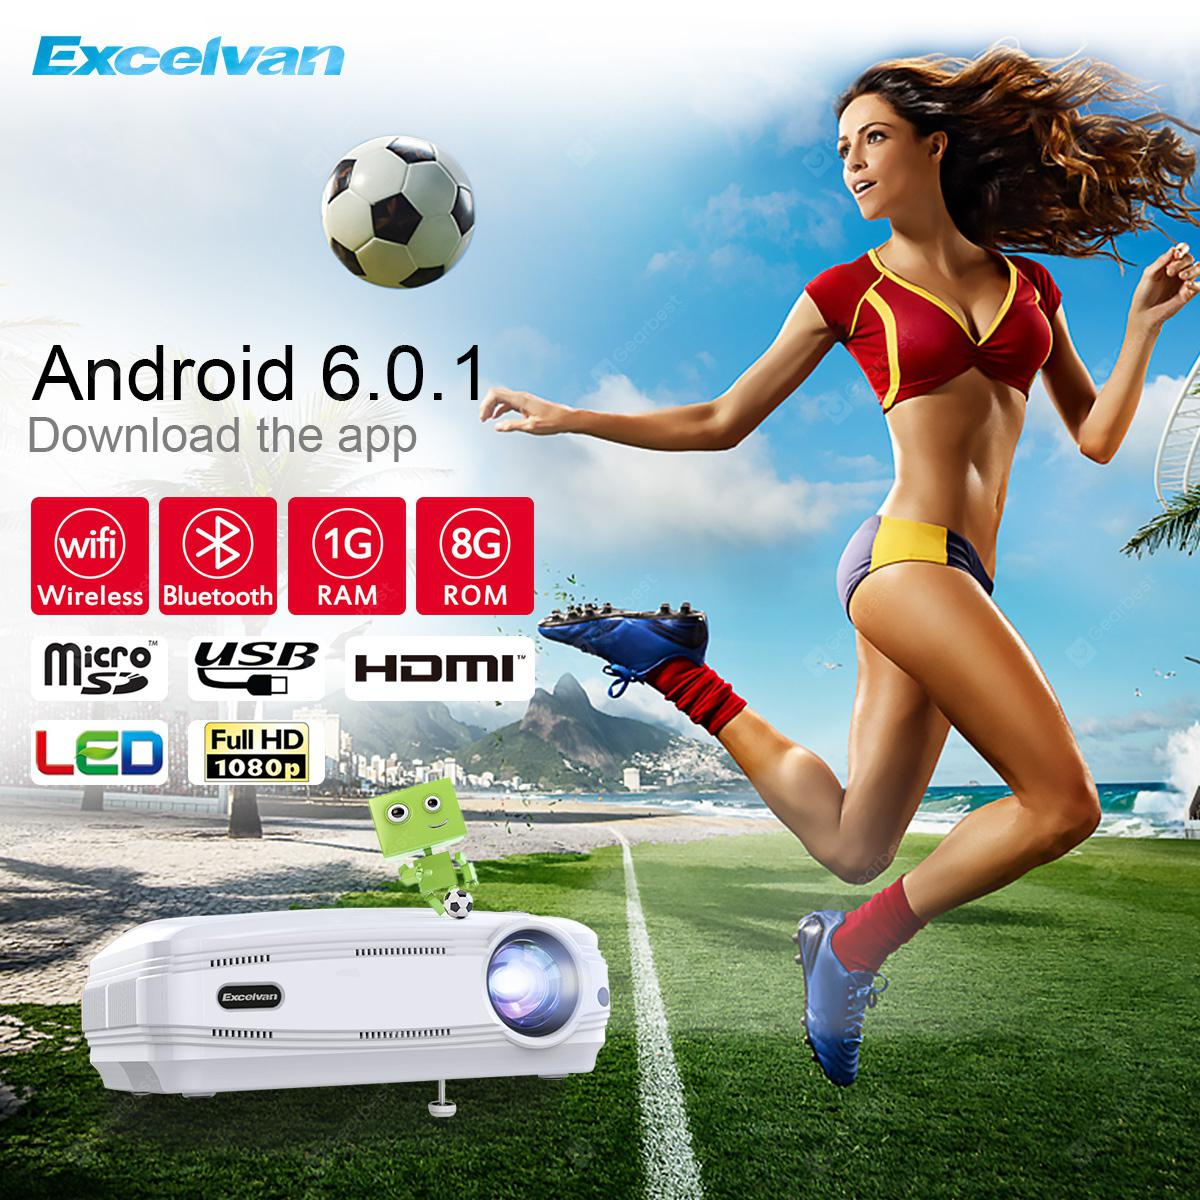 Excelvan BL - 59 HD Multimedia Projector